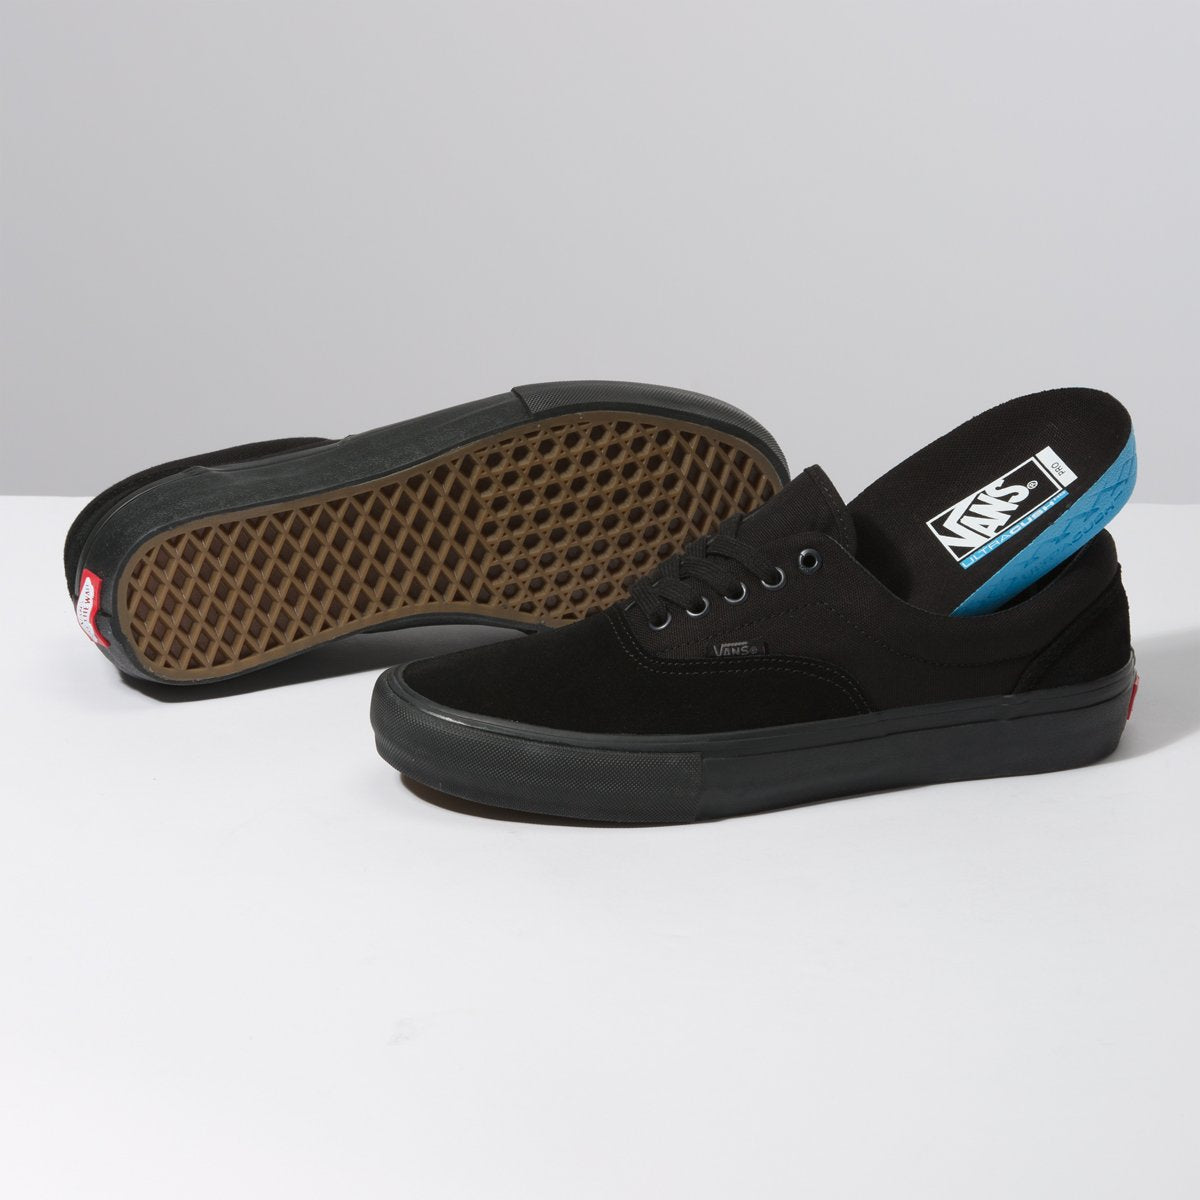 Zapatillas Vans Era Pro - Blackout - Vans